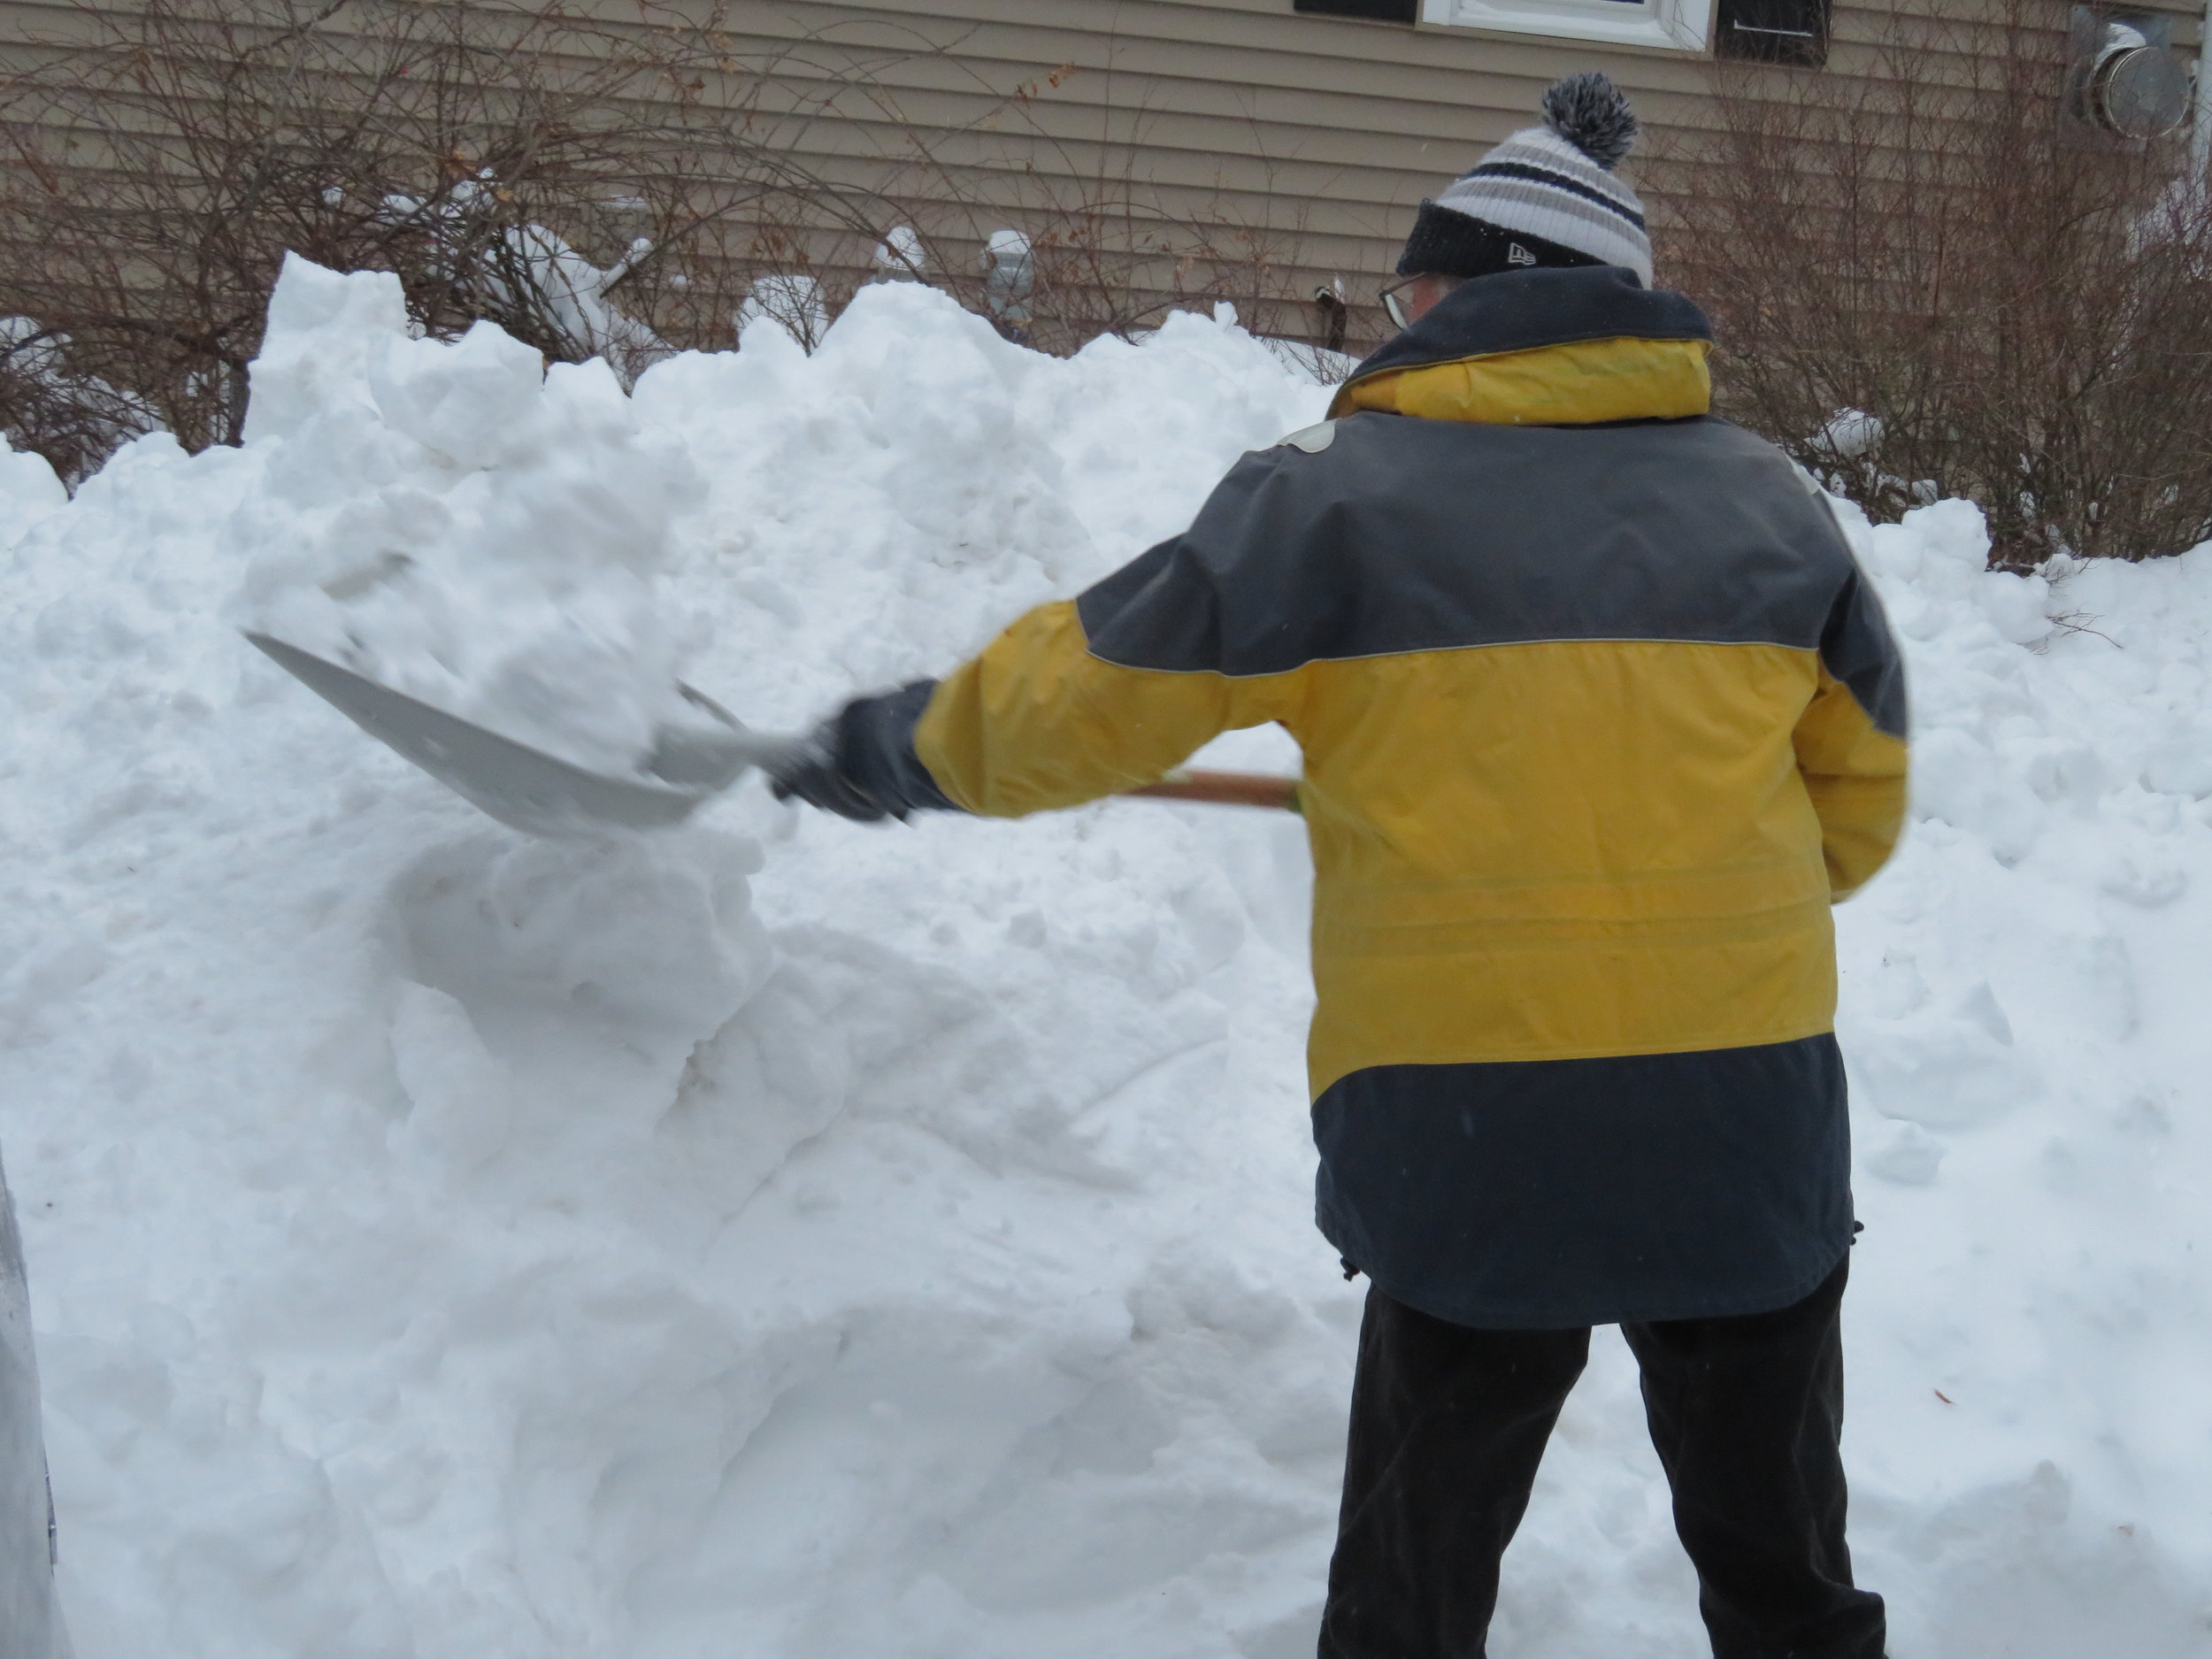 Toting the snow to the snowbank was a pain!